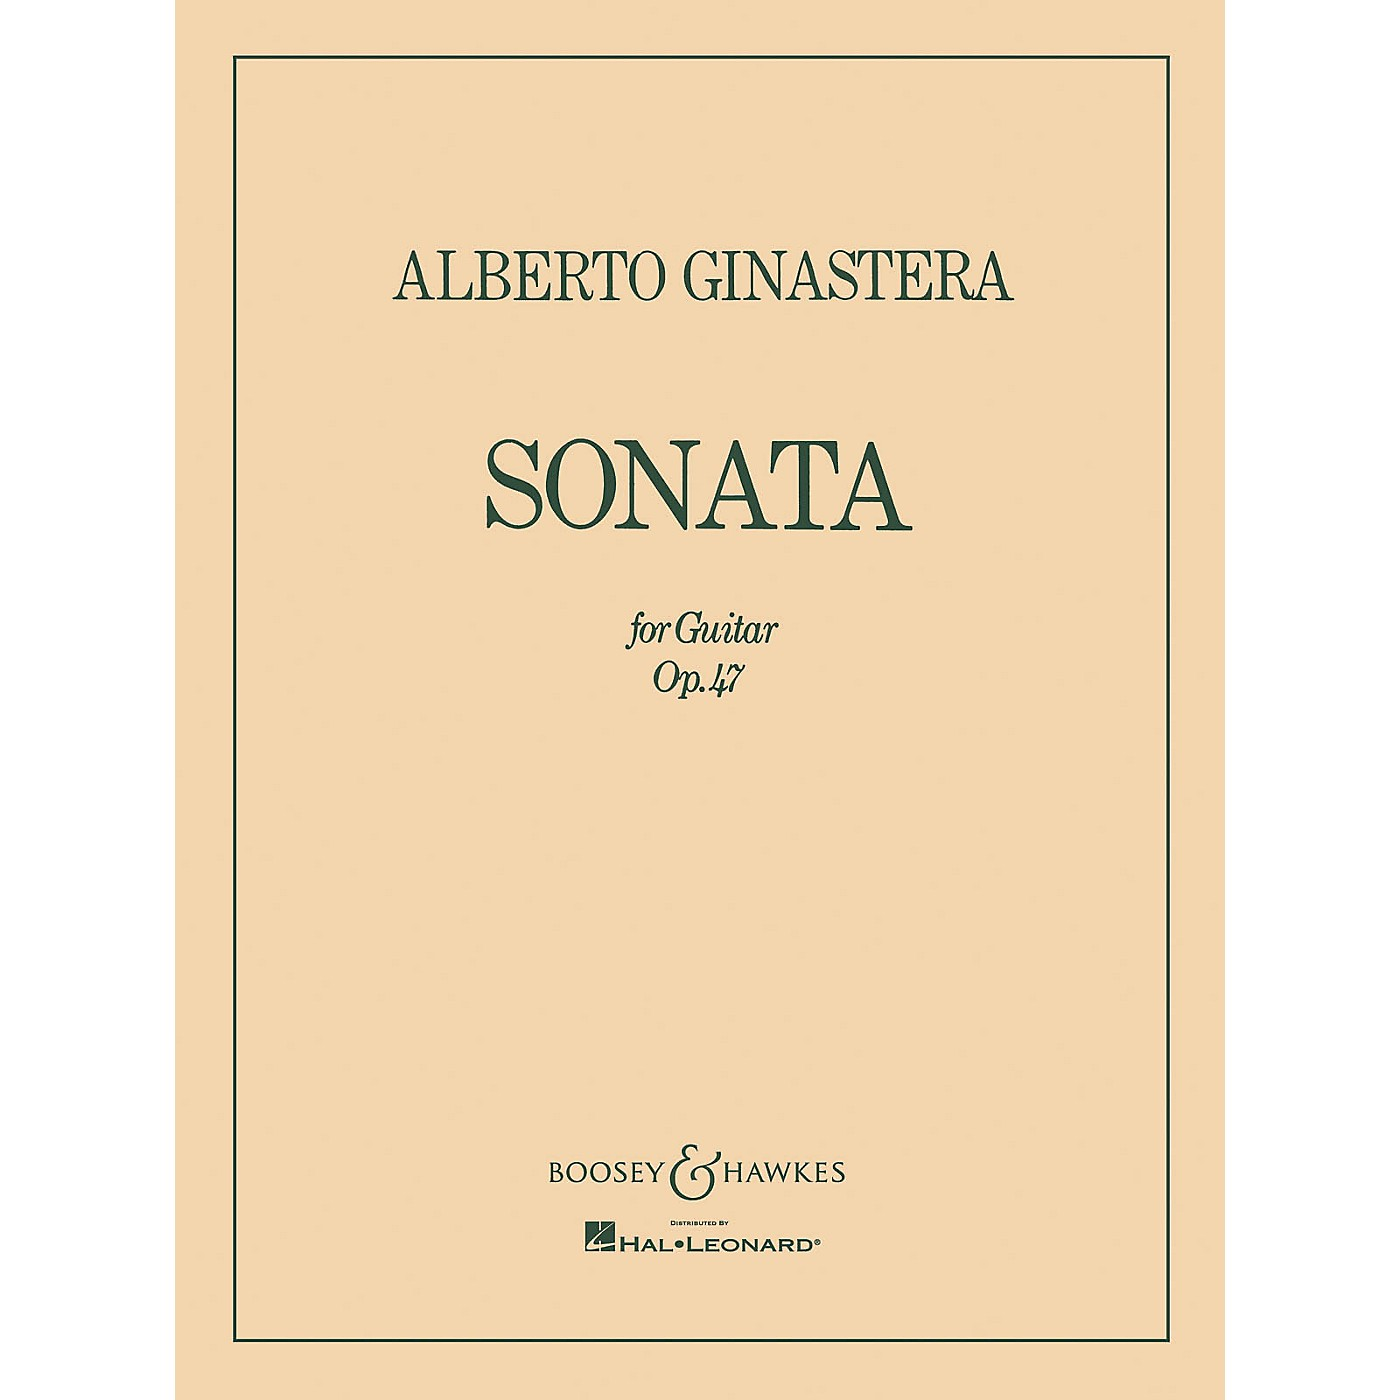 Boosey and Hawkes Sonata for Guitar, Op. 47 (Guitar Solo) Boosey & Hawkes Chamber Music Series thumbnail